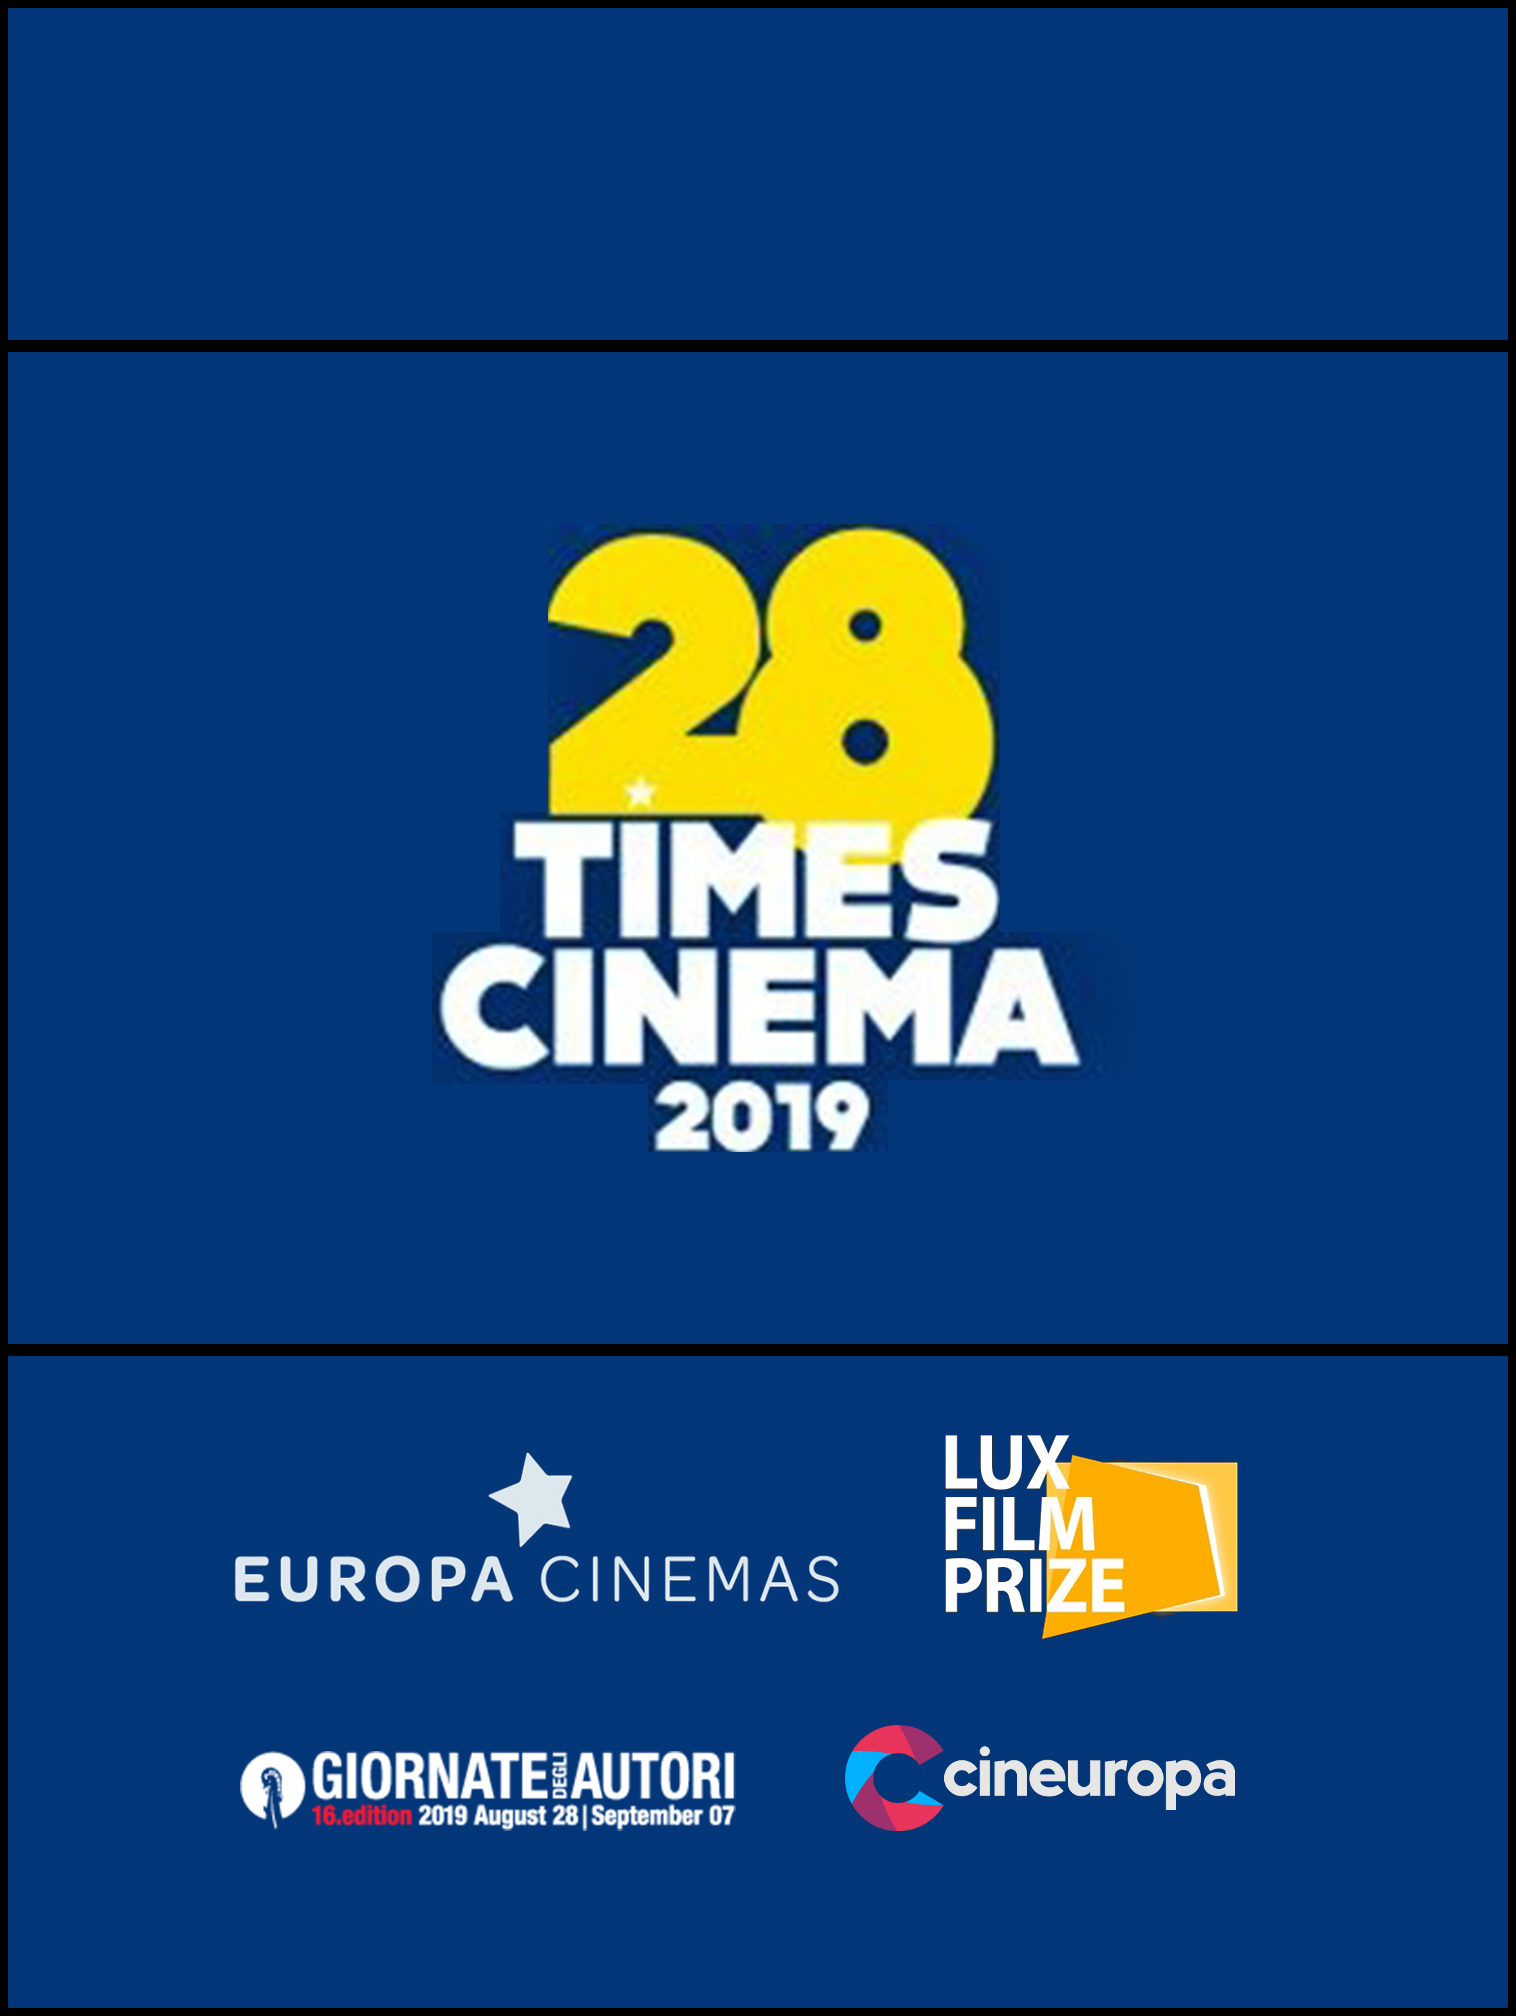 28TimesCinema2019Interior